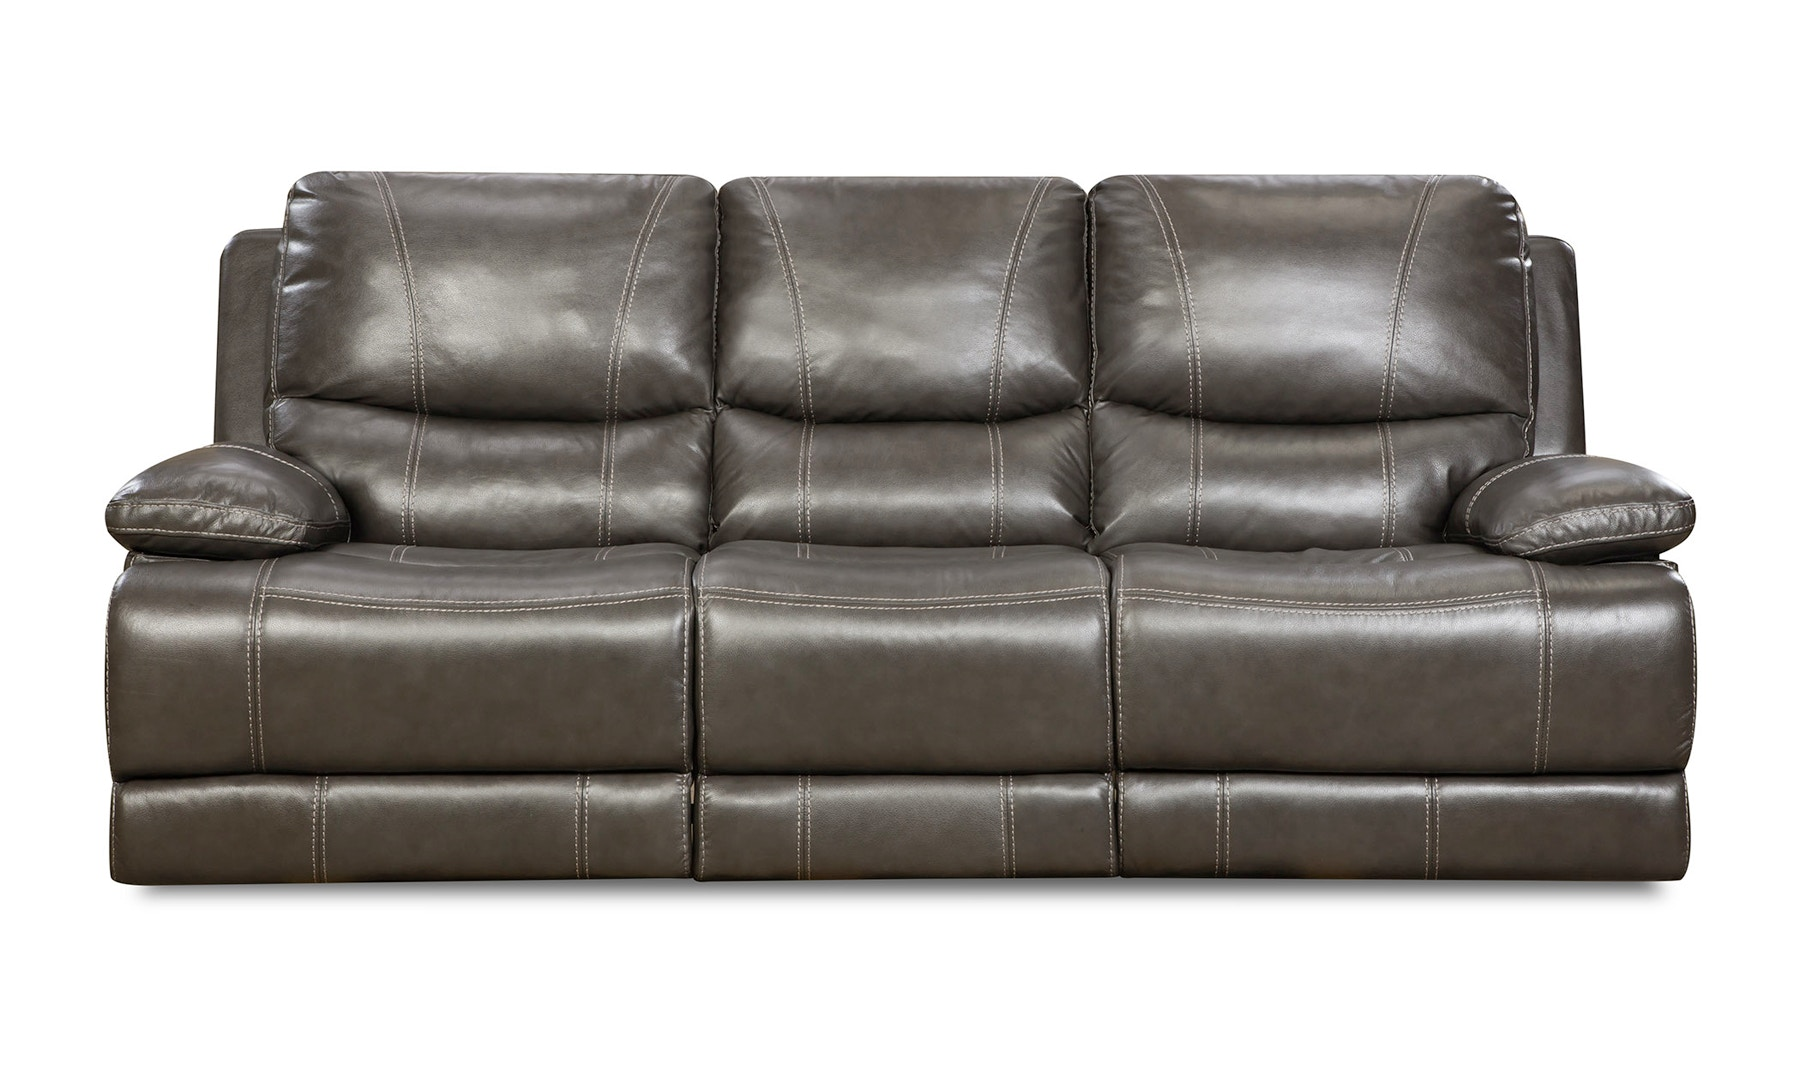 Corinthian Living Room Brooklyn Power Reclining Sofa 056158